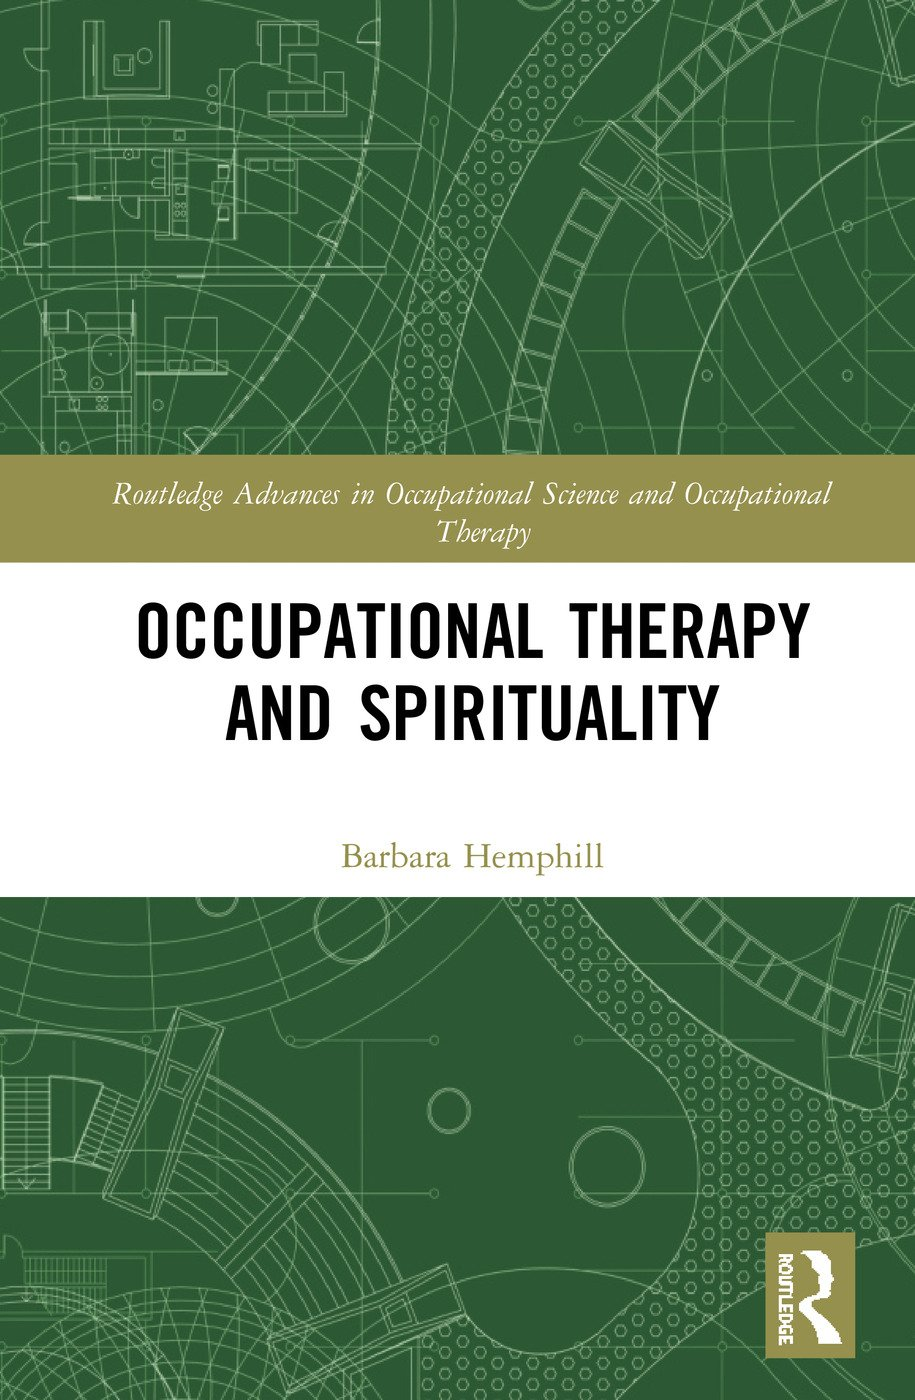 Occupational Therapy and Spirituality book cover